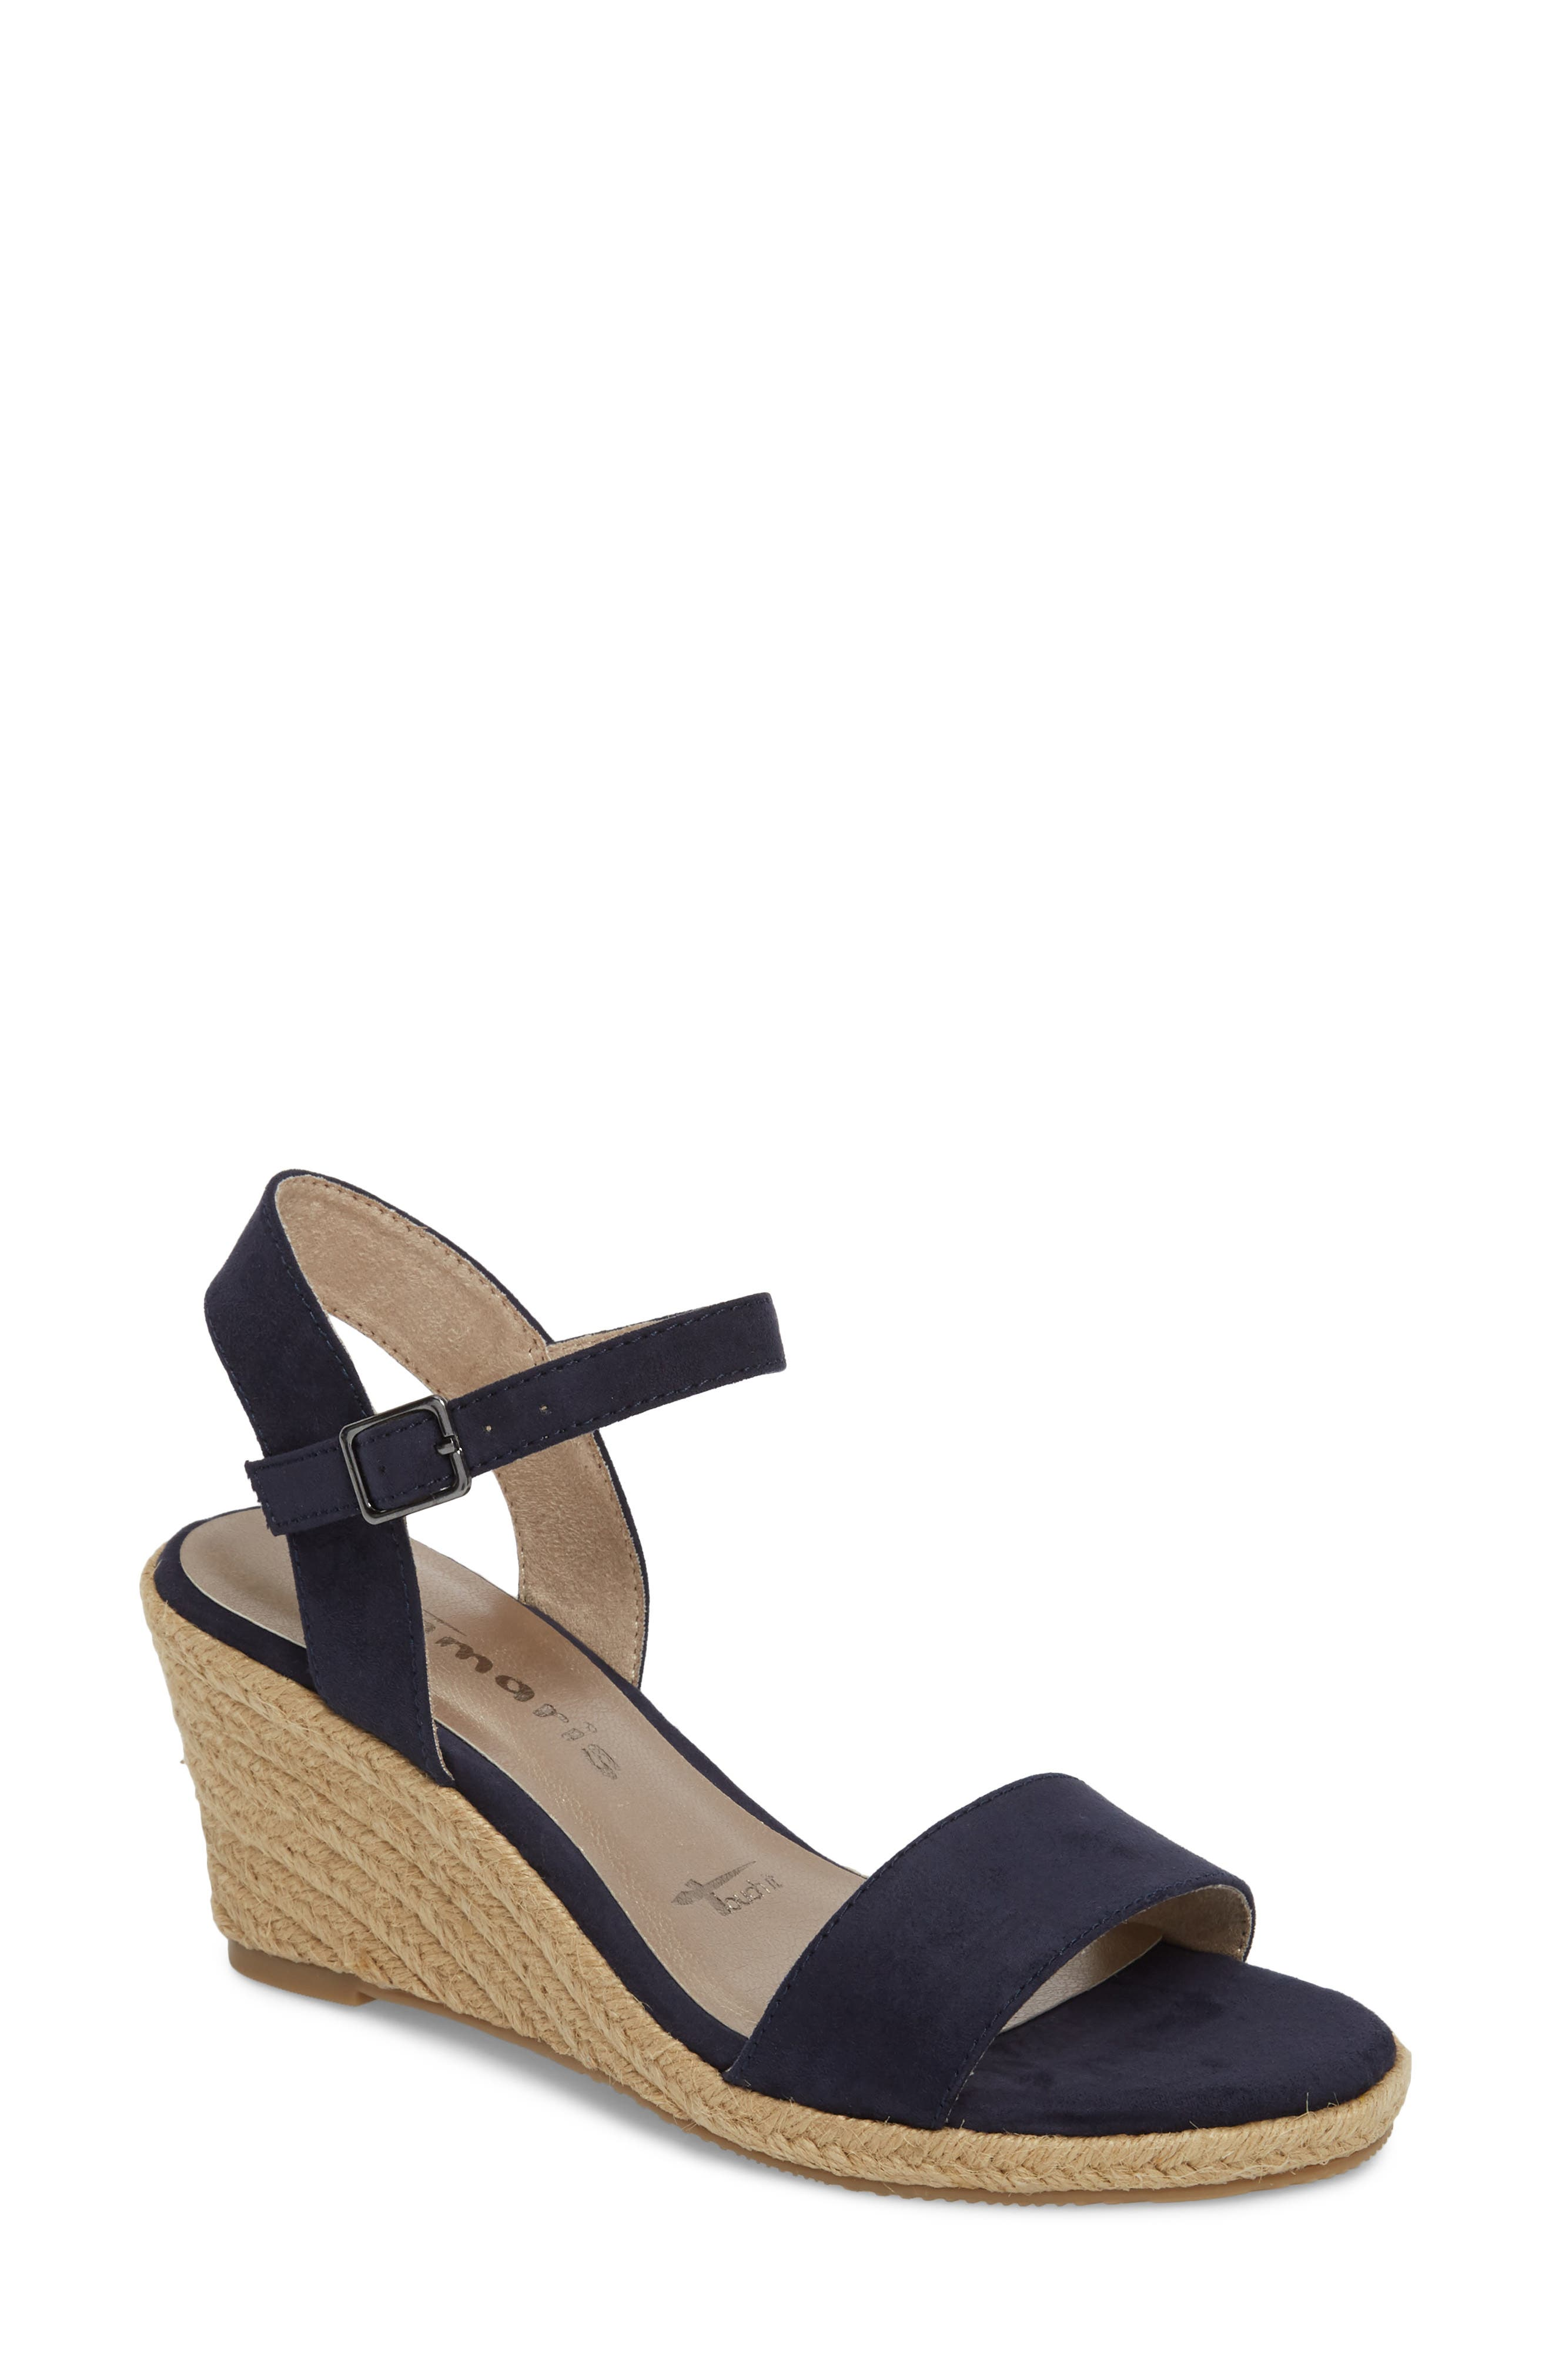 Livia Espadrille Wedge Sandal,                             Main thumbnail 1, color,                             NAVY FABRIC